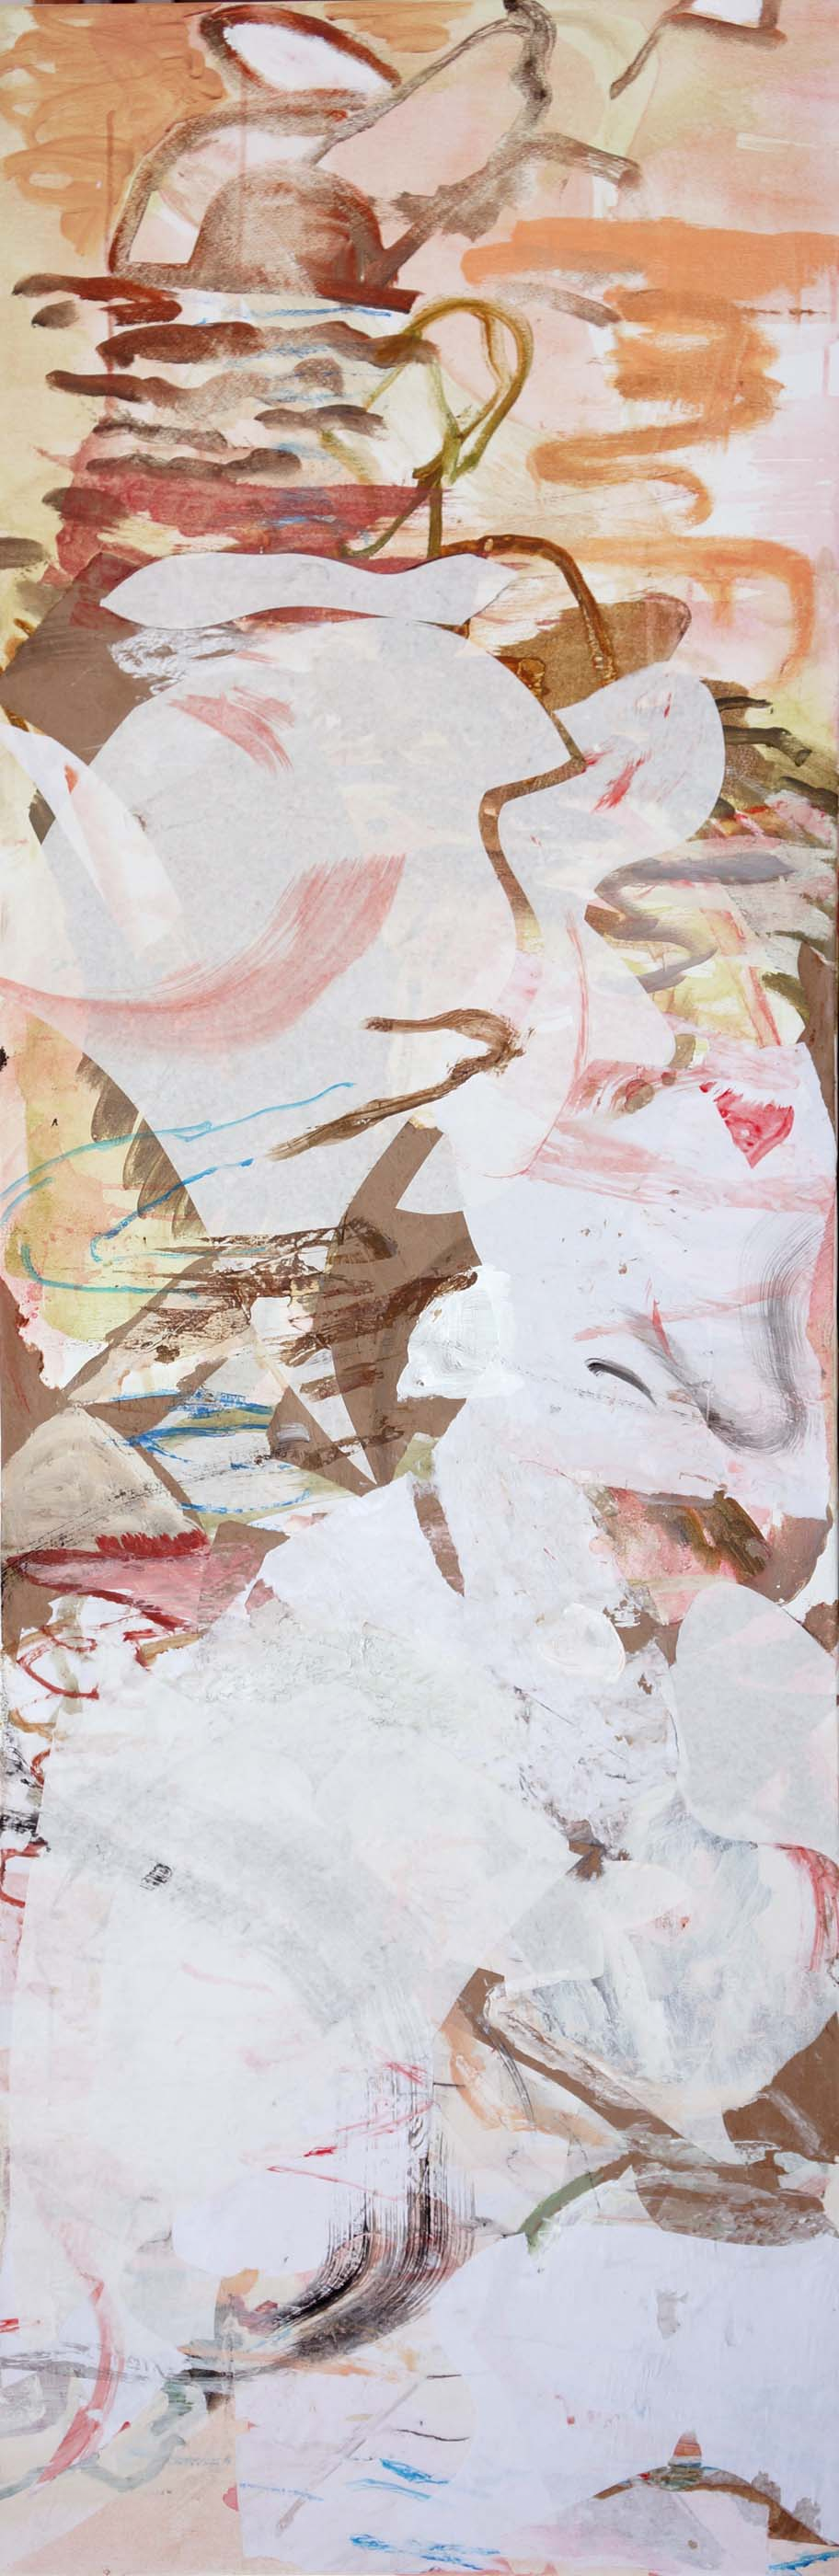 song creek  78x26  acrylic & collaged paper on canvas